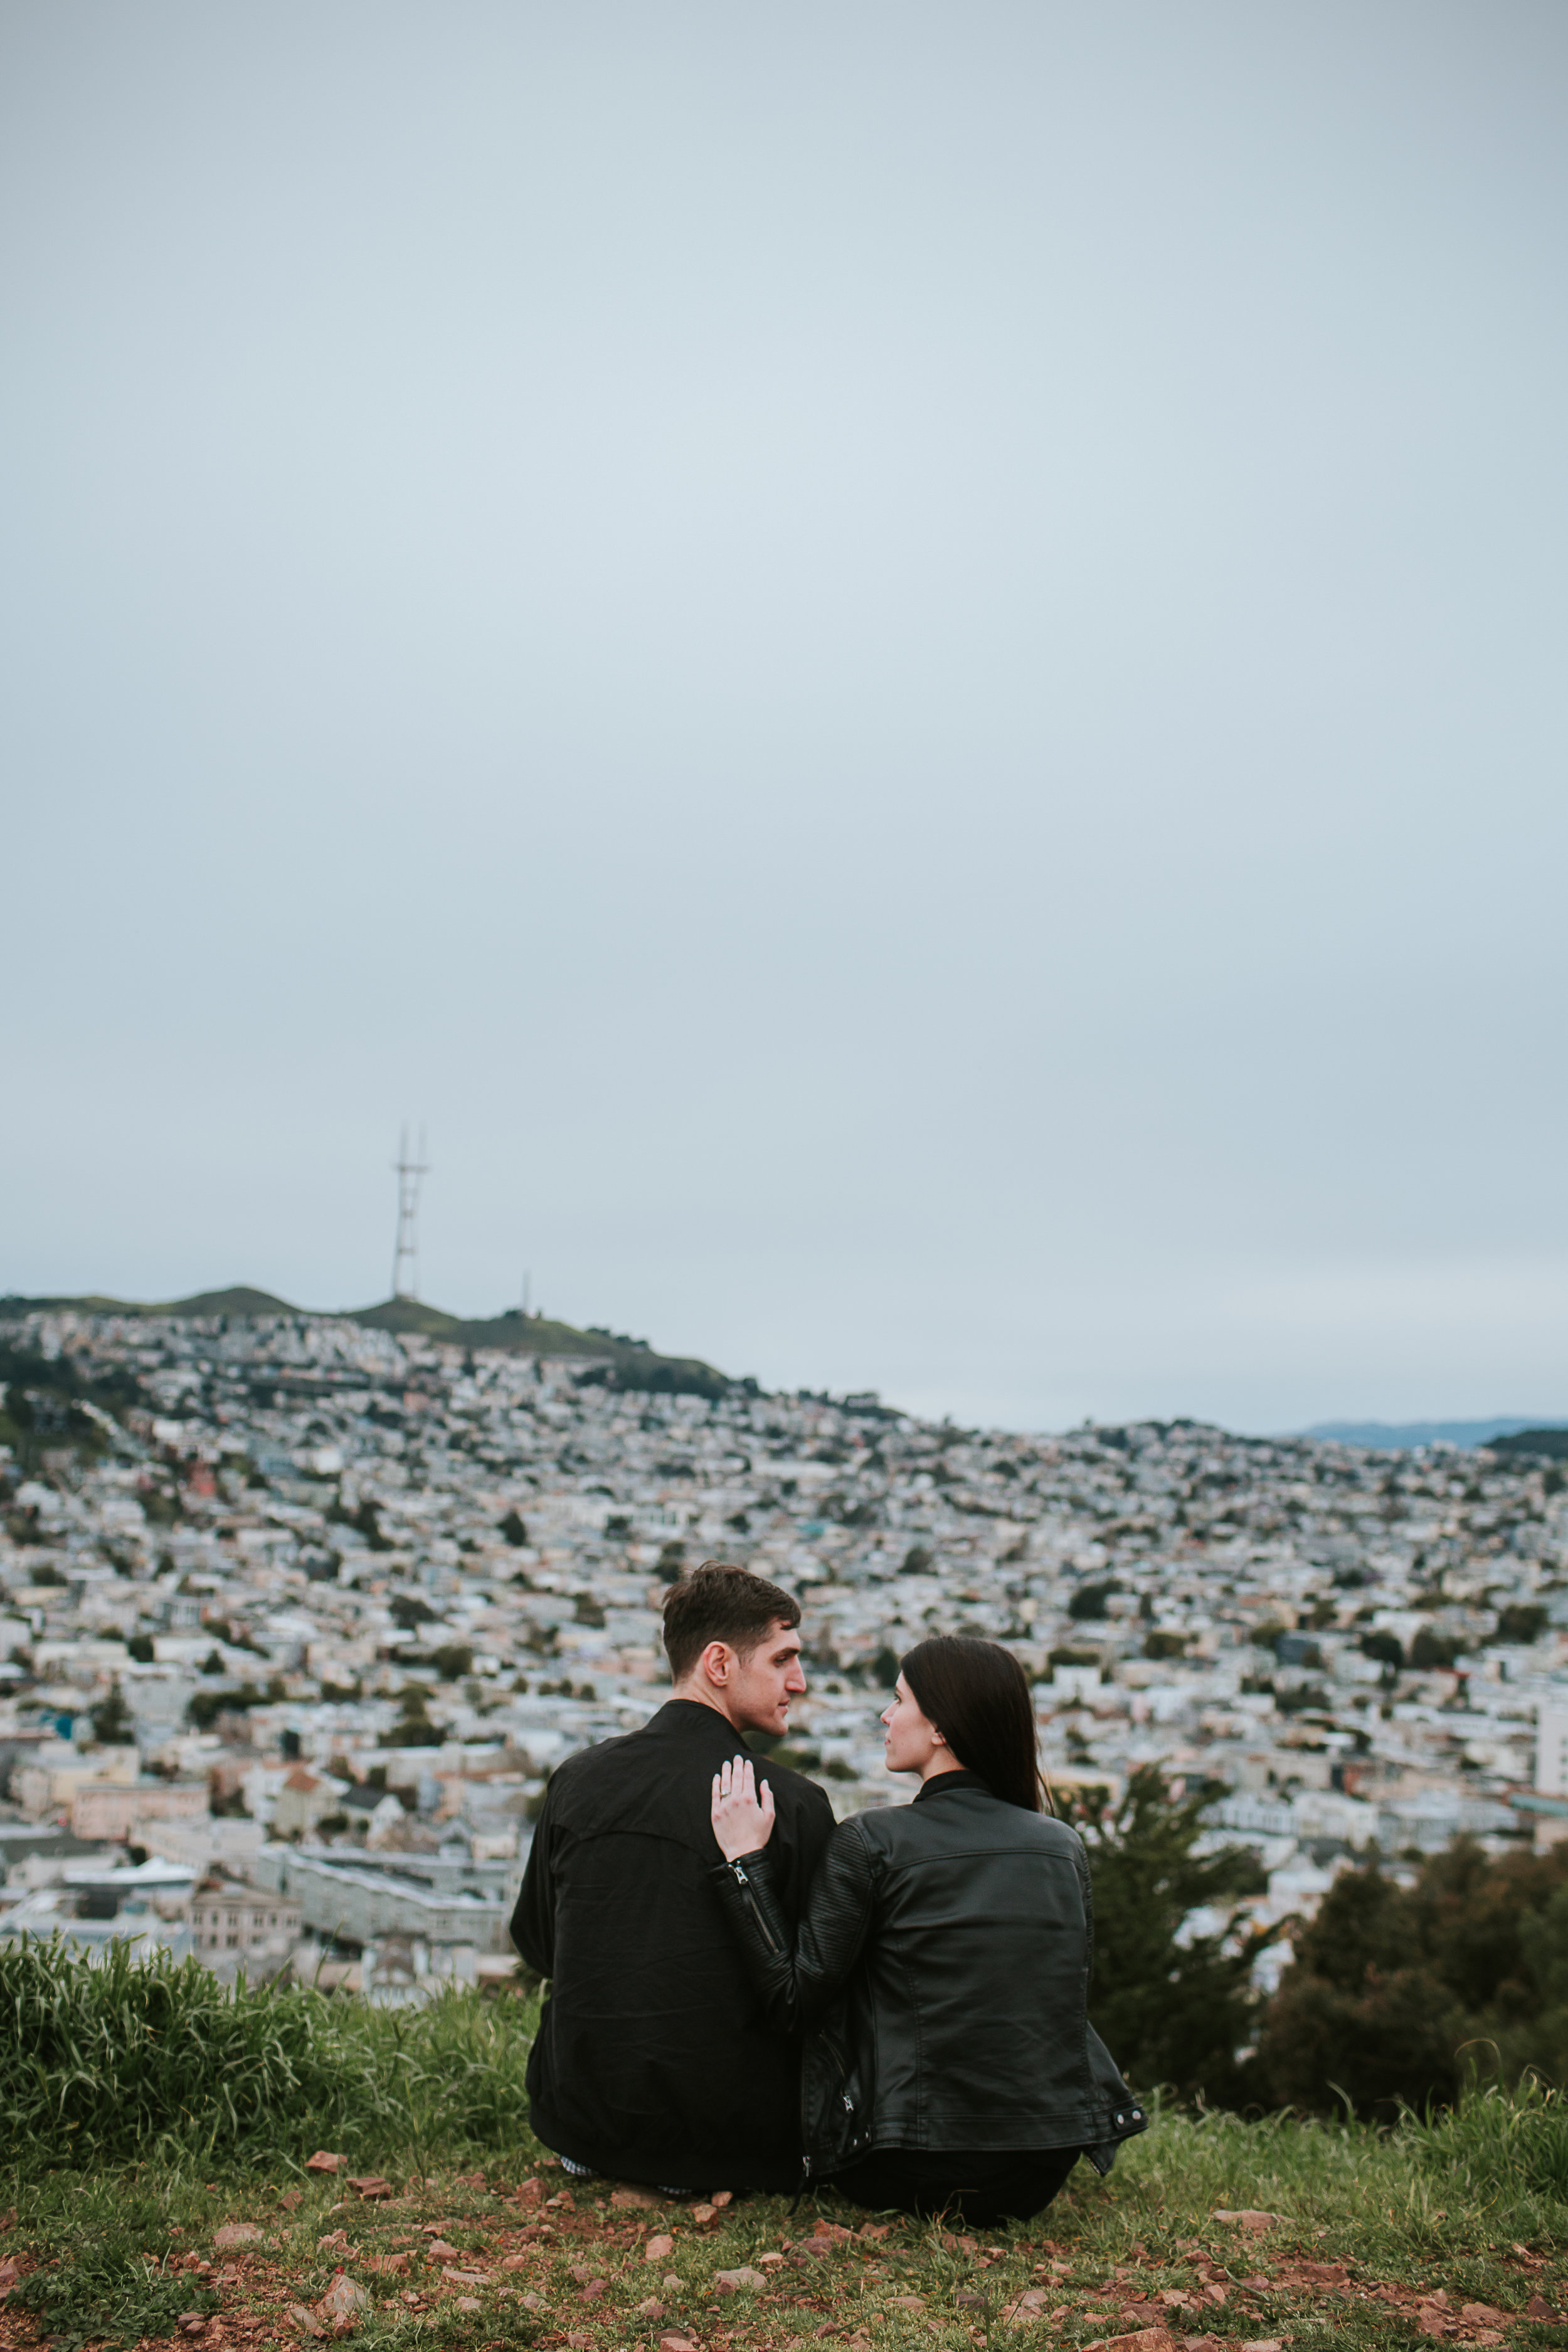 Nikki.Steven.san francisco. engagement. bernal heights dolores mission district-110.jpg